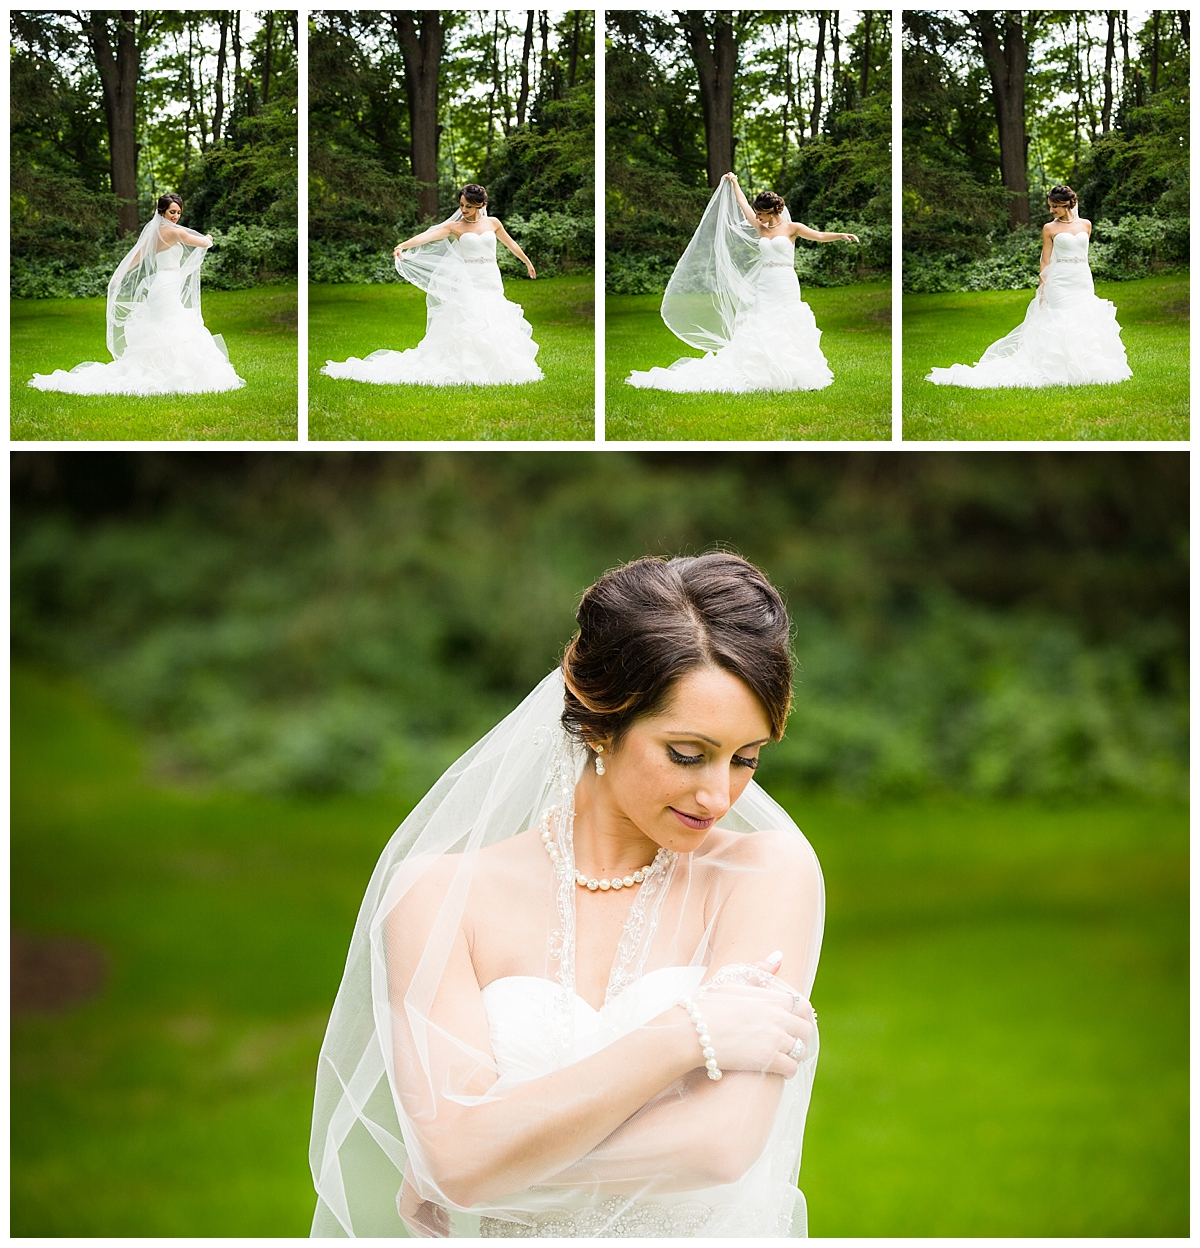 Bridal Portrait, bride with cathedral length veil